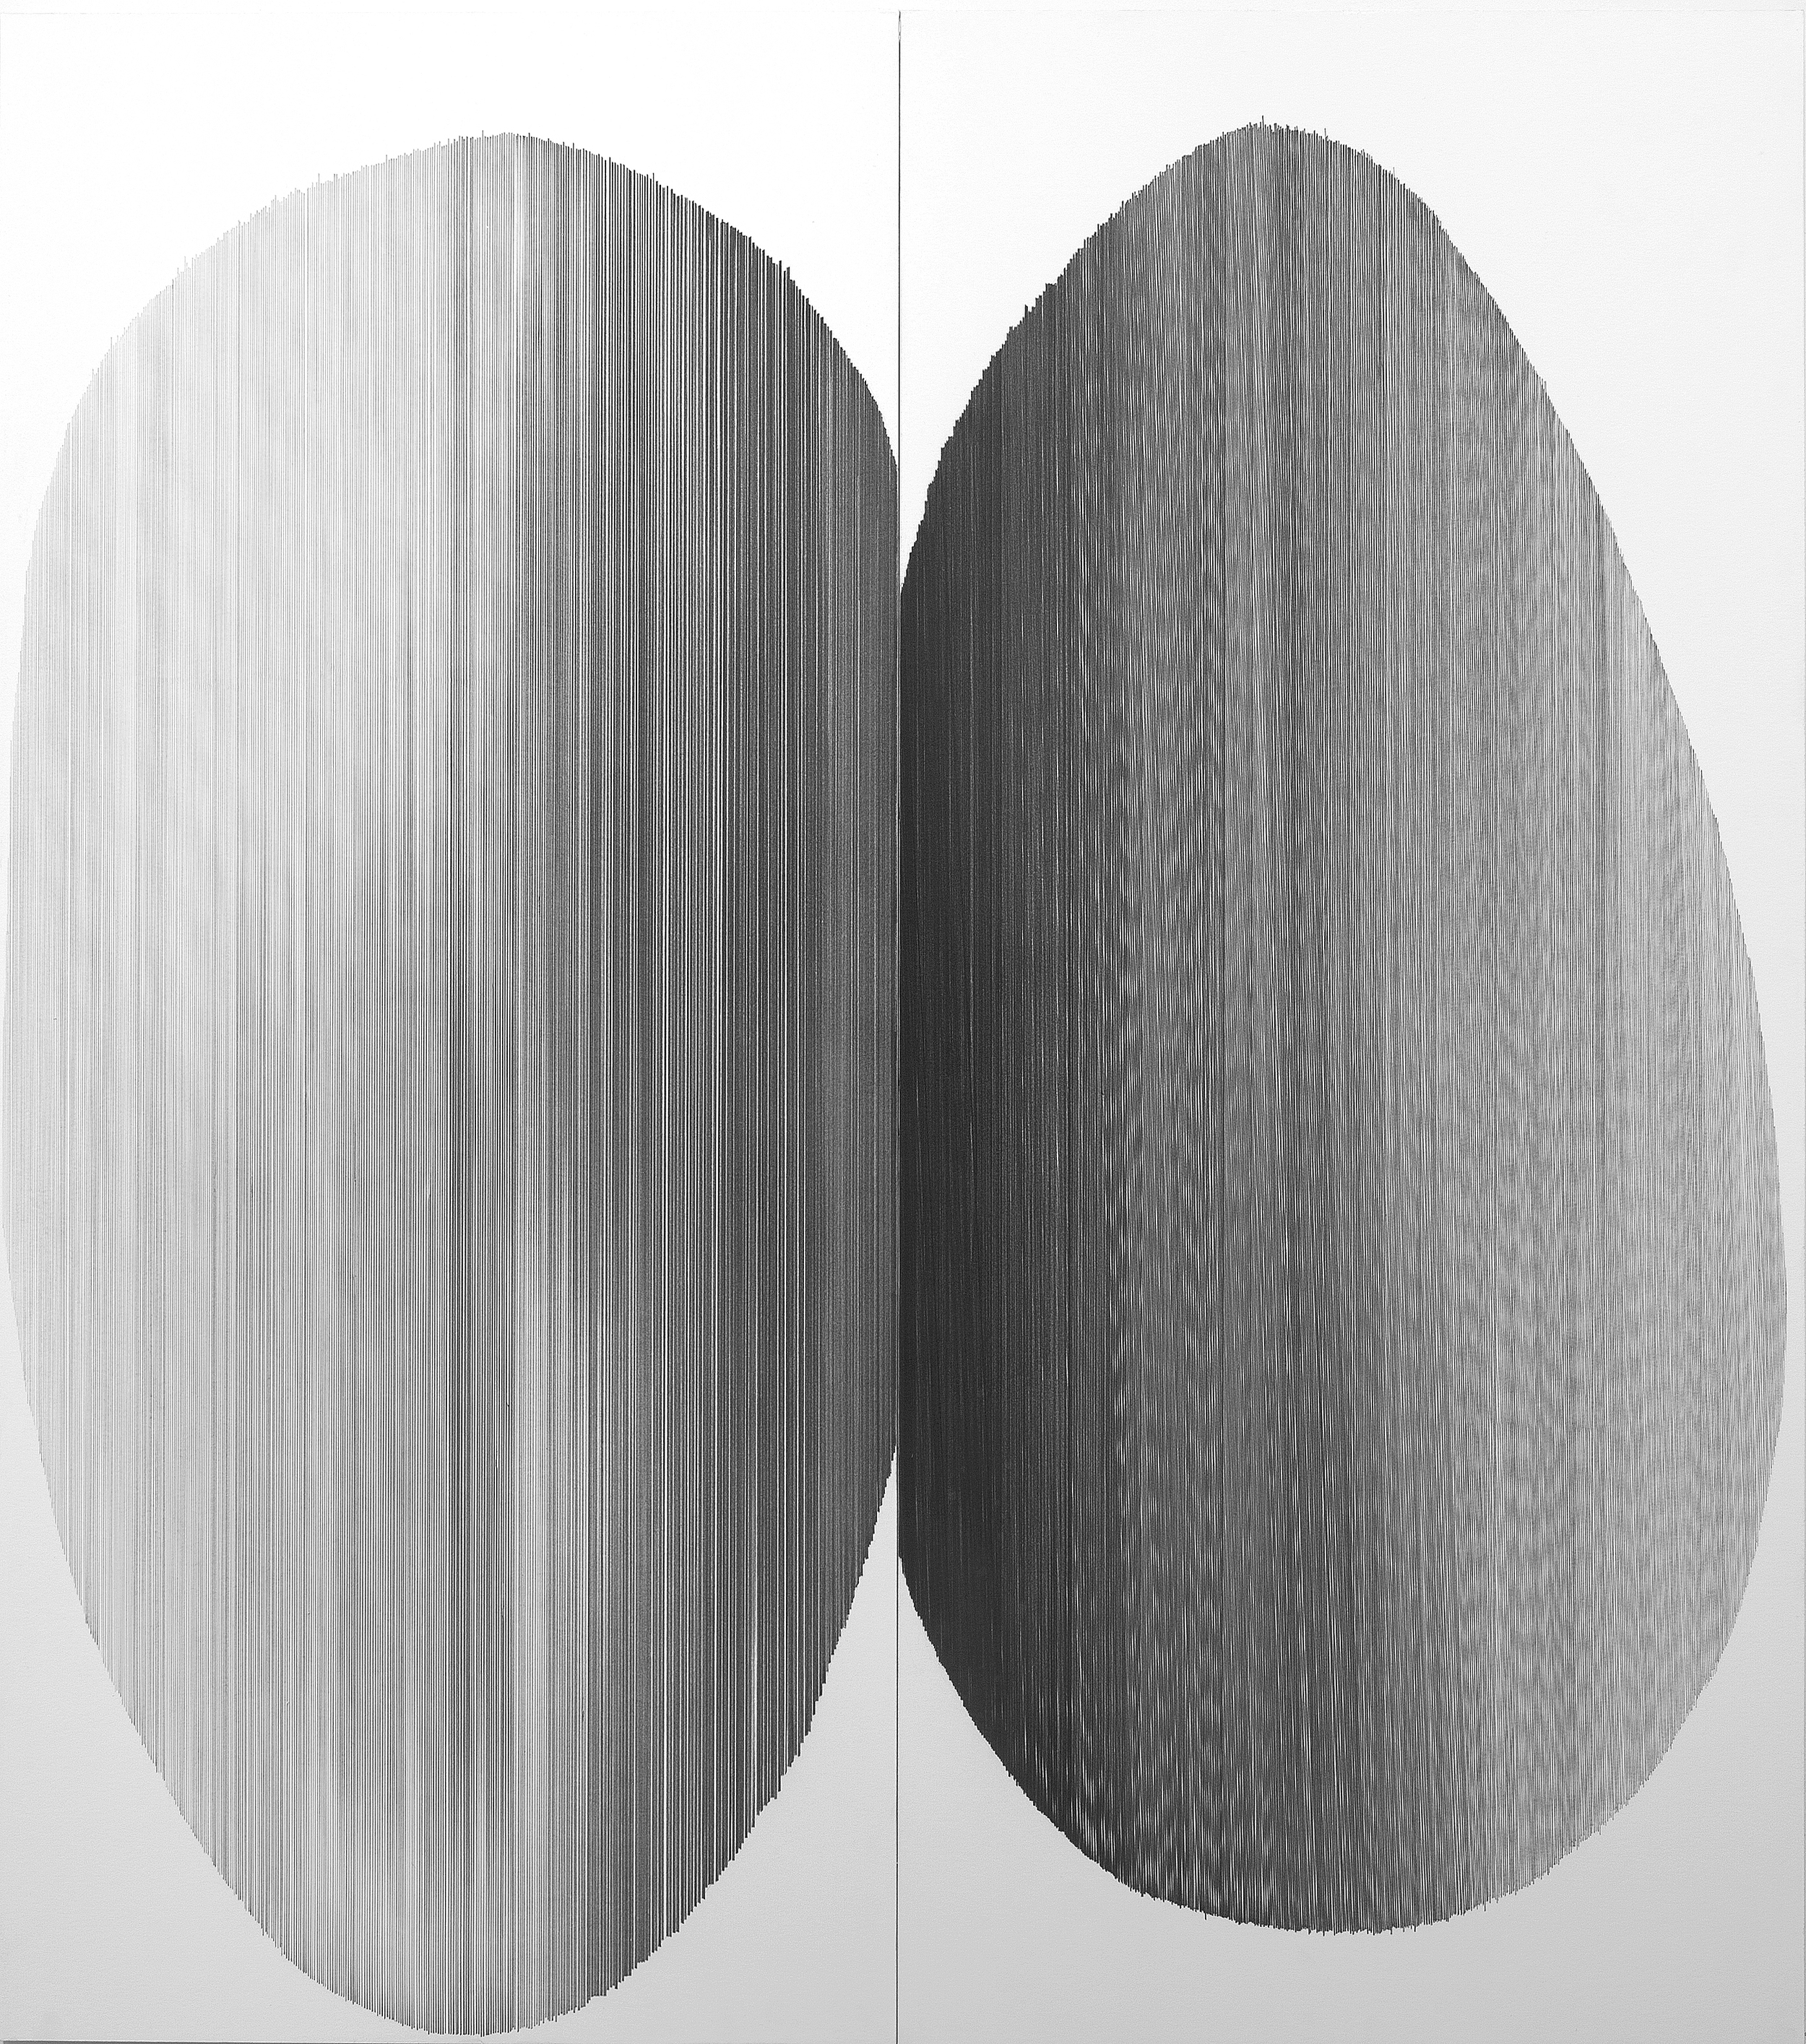 tandem 03   2016   graphite on mat board   44 by 50 inches